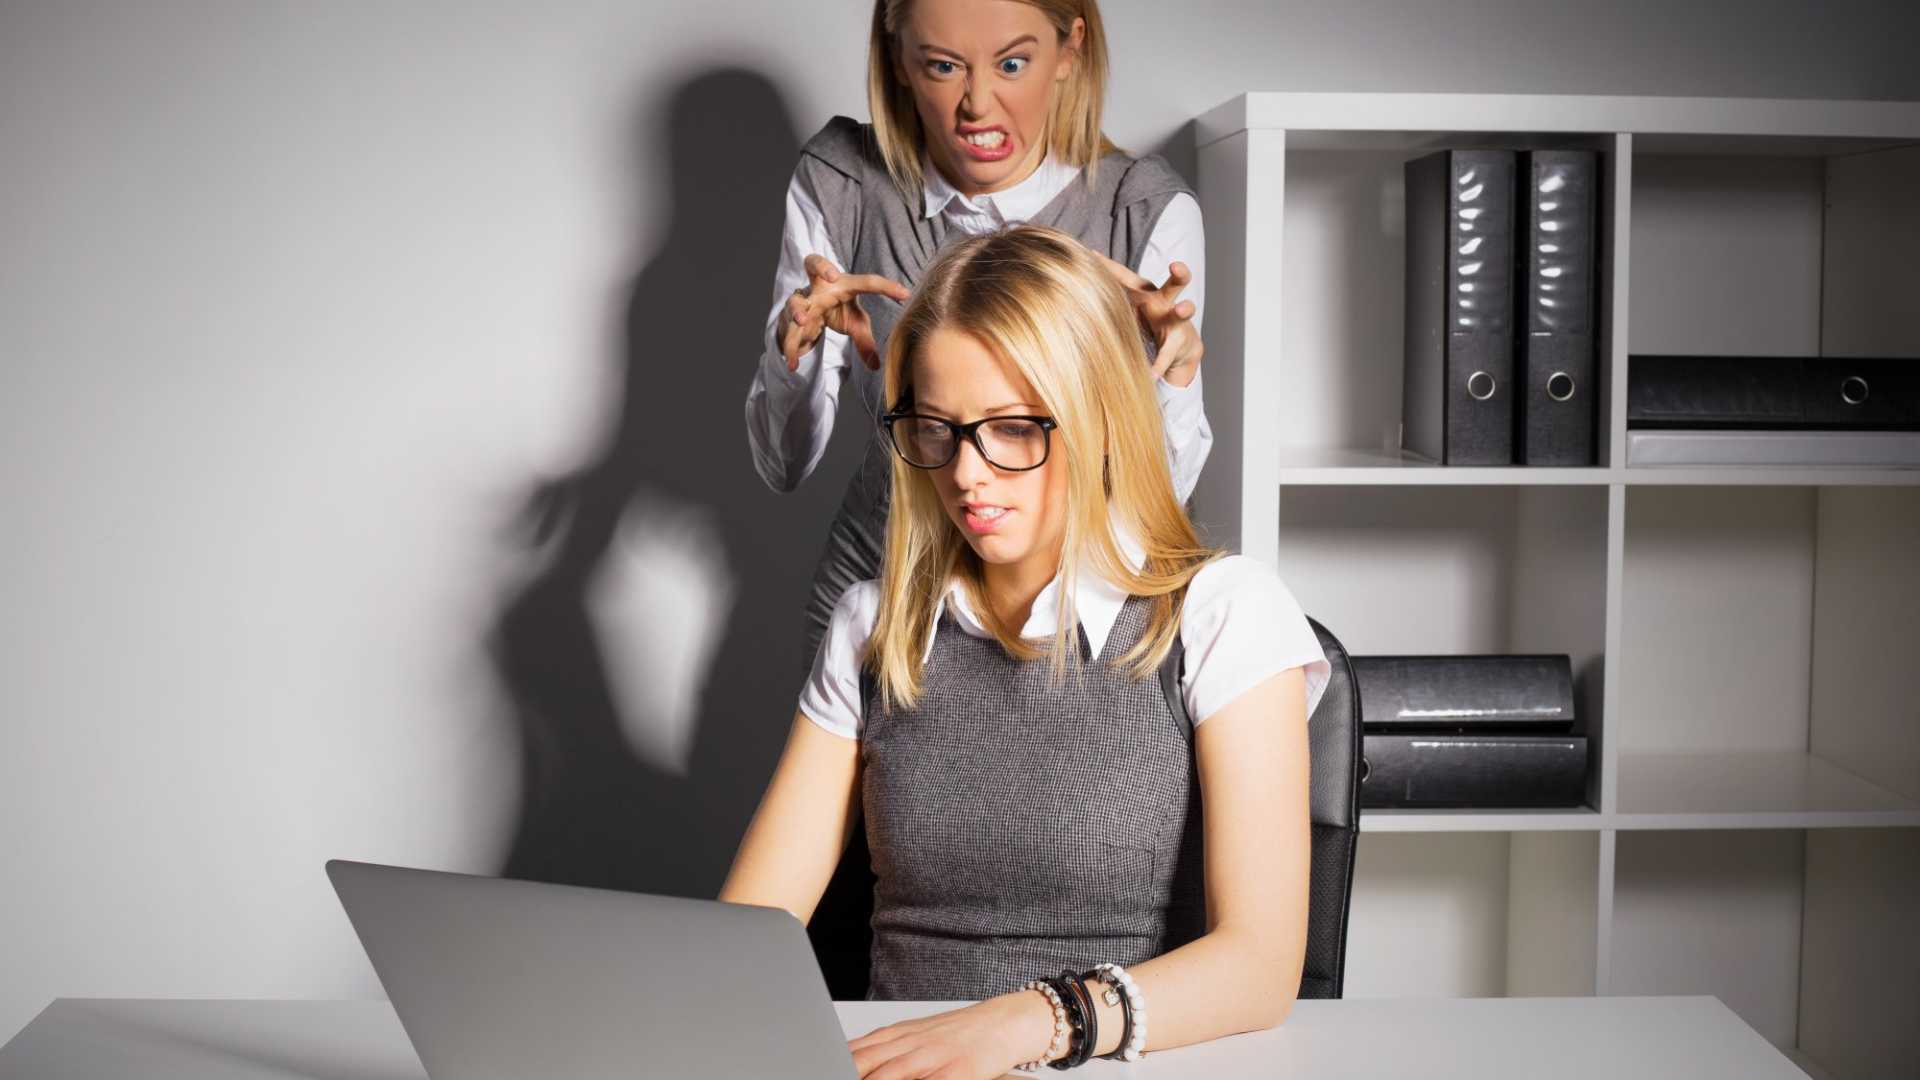 How to Quit a Job When Your Boss is a Sociopathic Control Freak